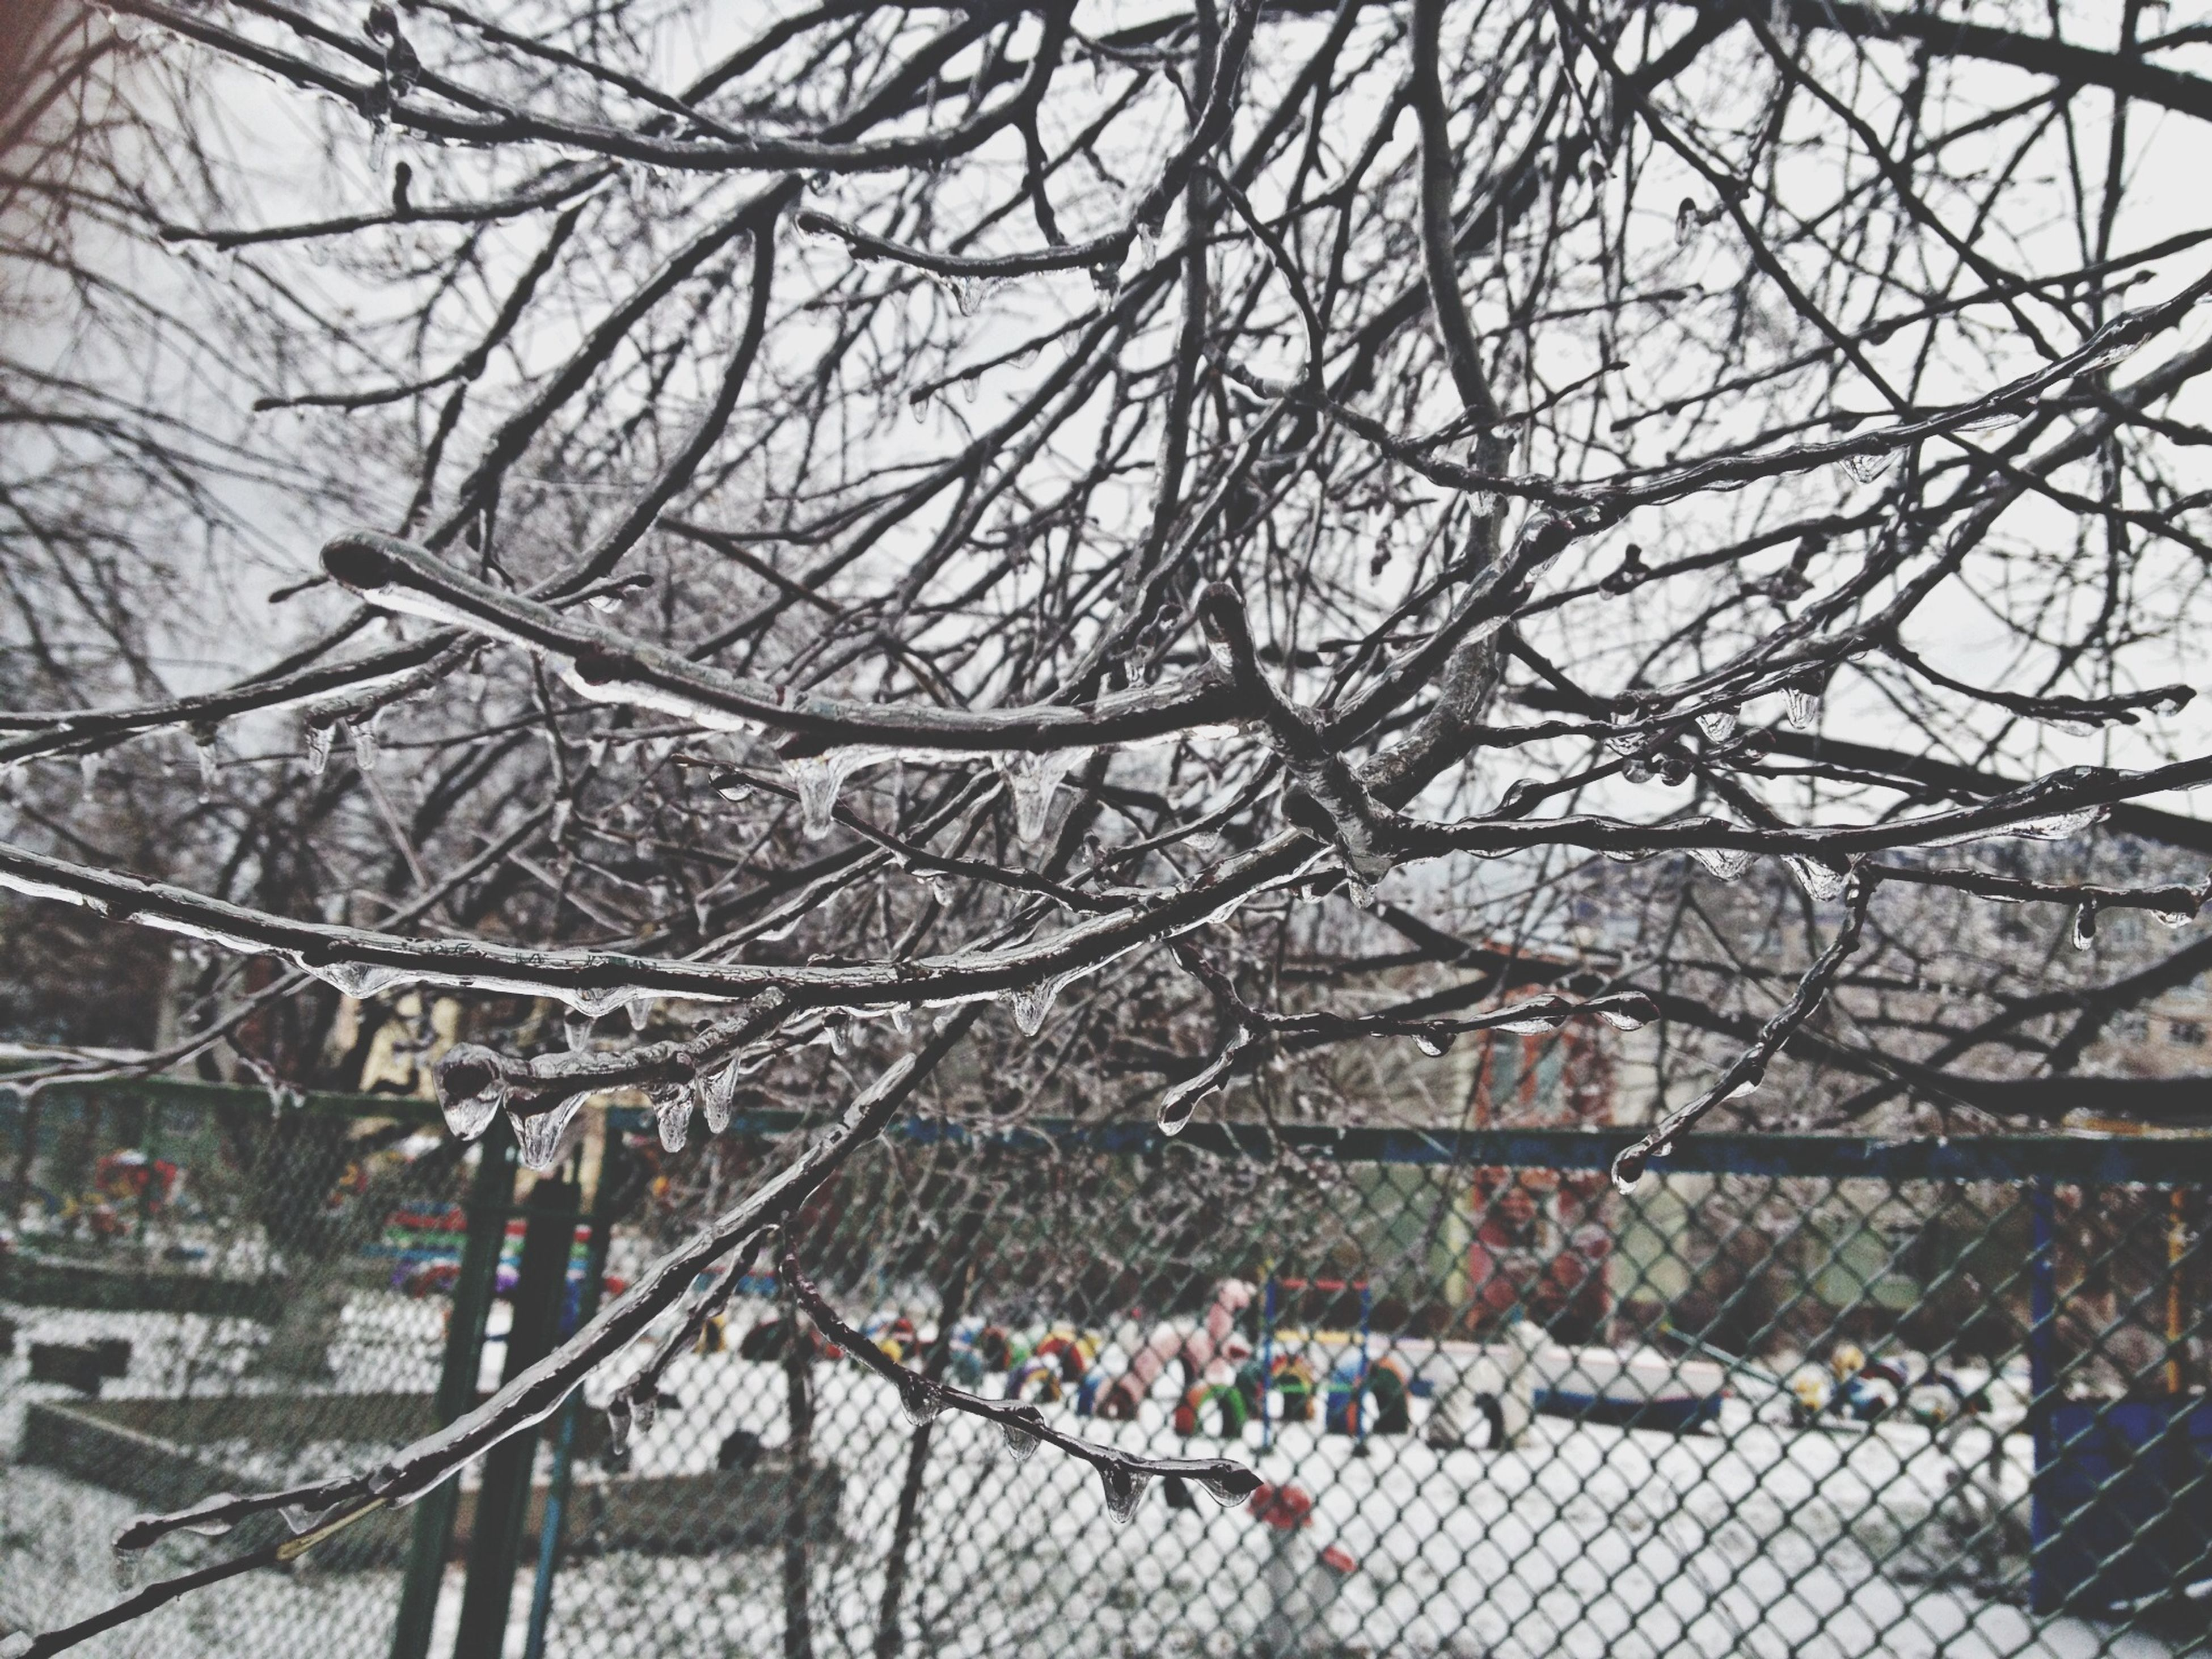 bare tree, fence, tree, built structure, branch, chainlink fence, architecture, building exterior, metal, protection, day, sky, outdoors, winter, city, full frame, pattern, safety, snow, railing